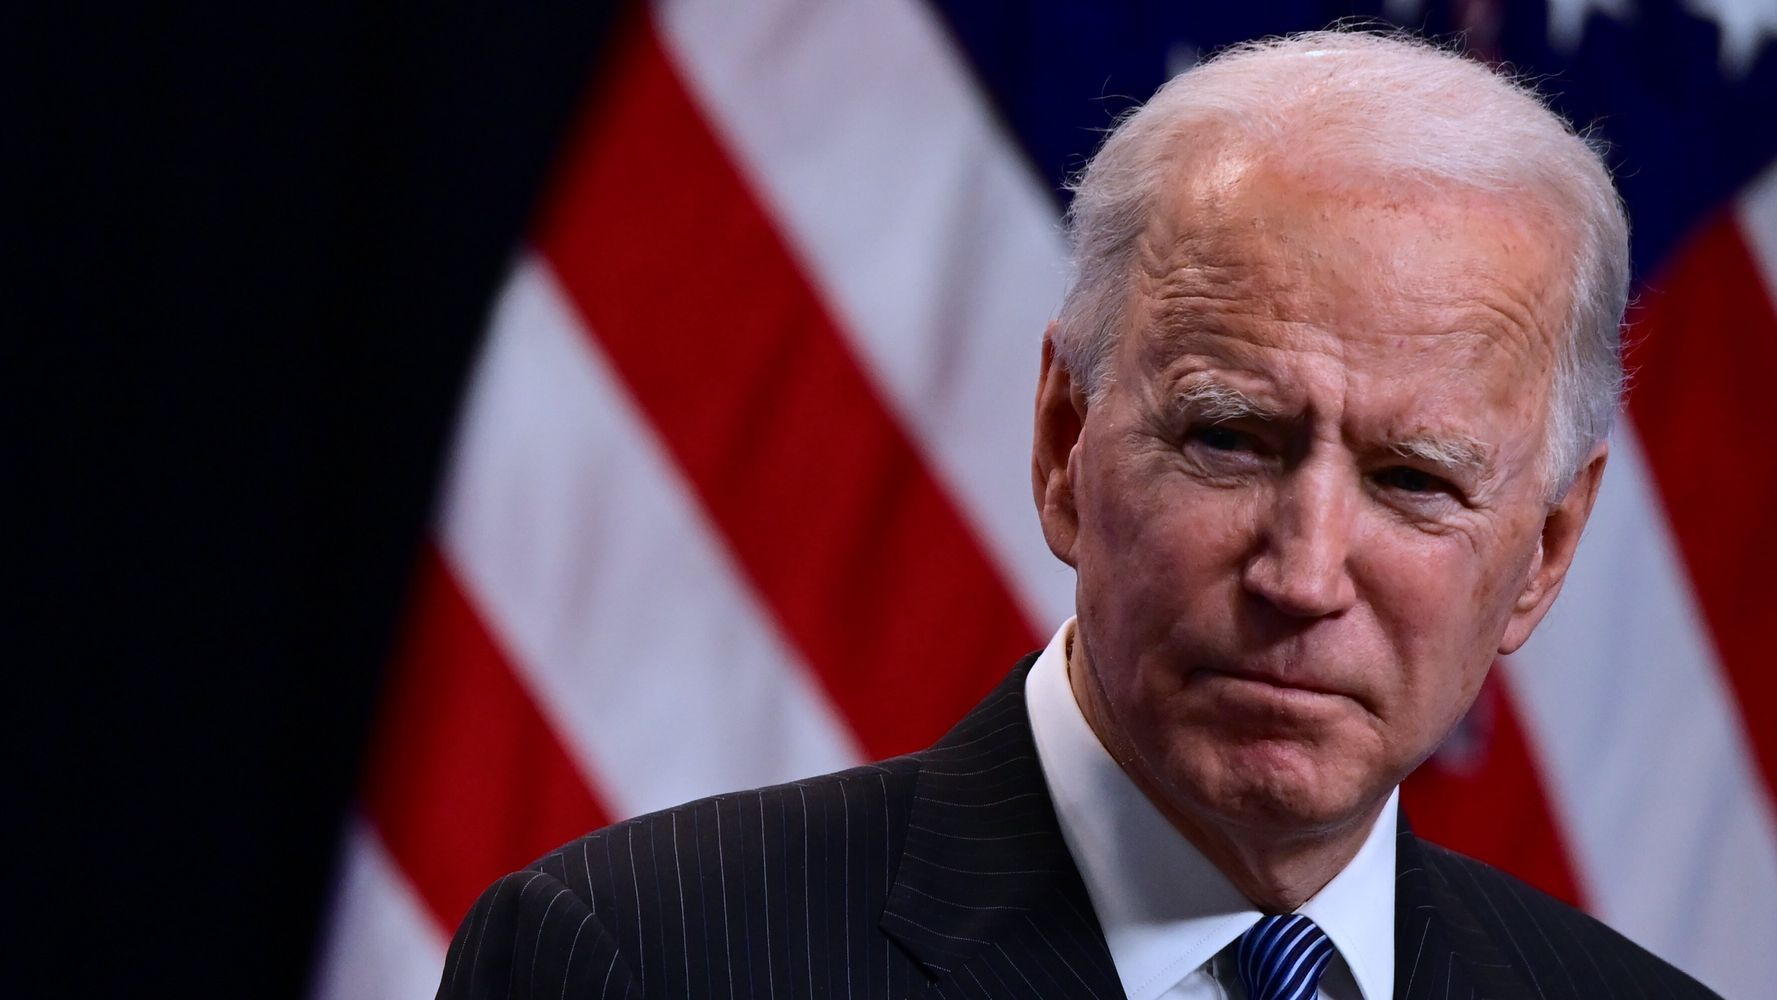 Joe Biden Says Trump's Impeachment Trial In Senate 'Has To Happen'